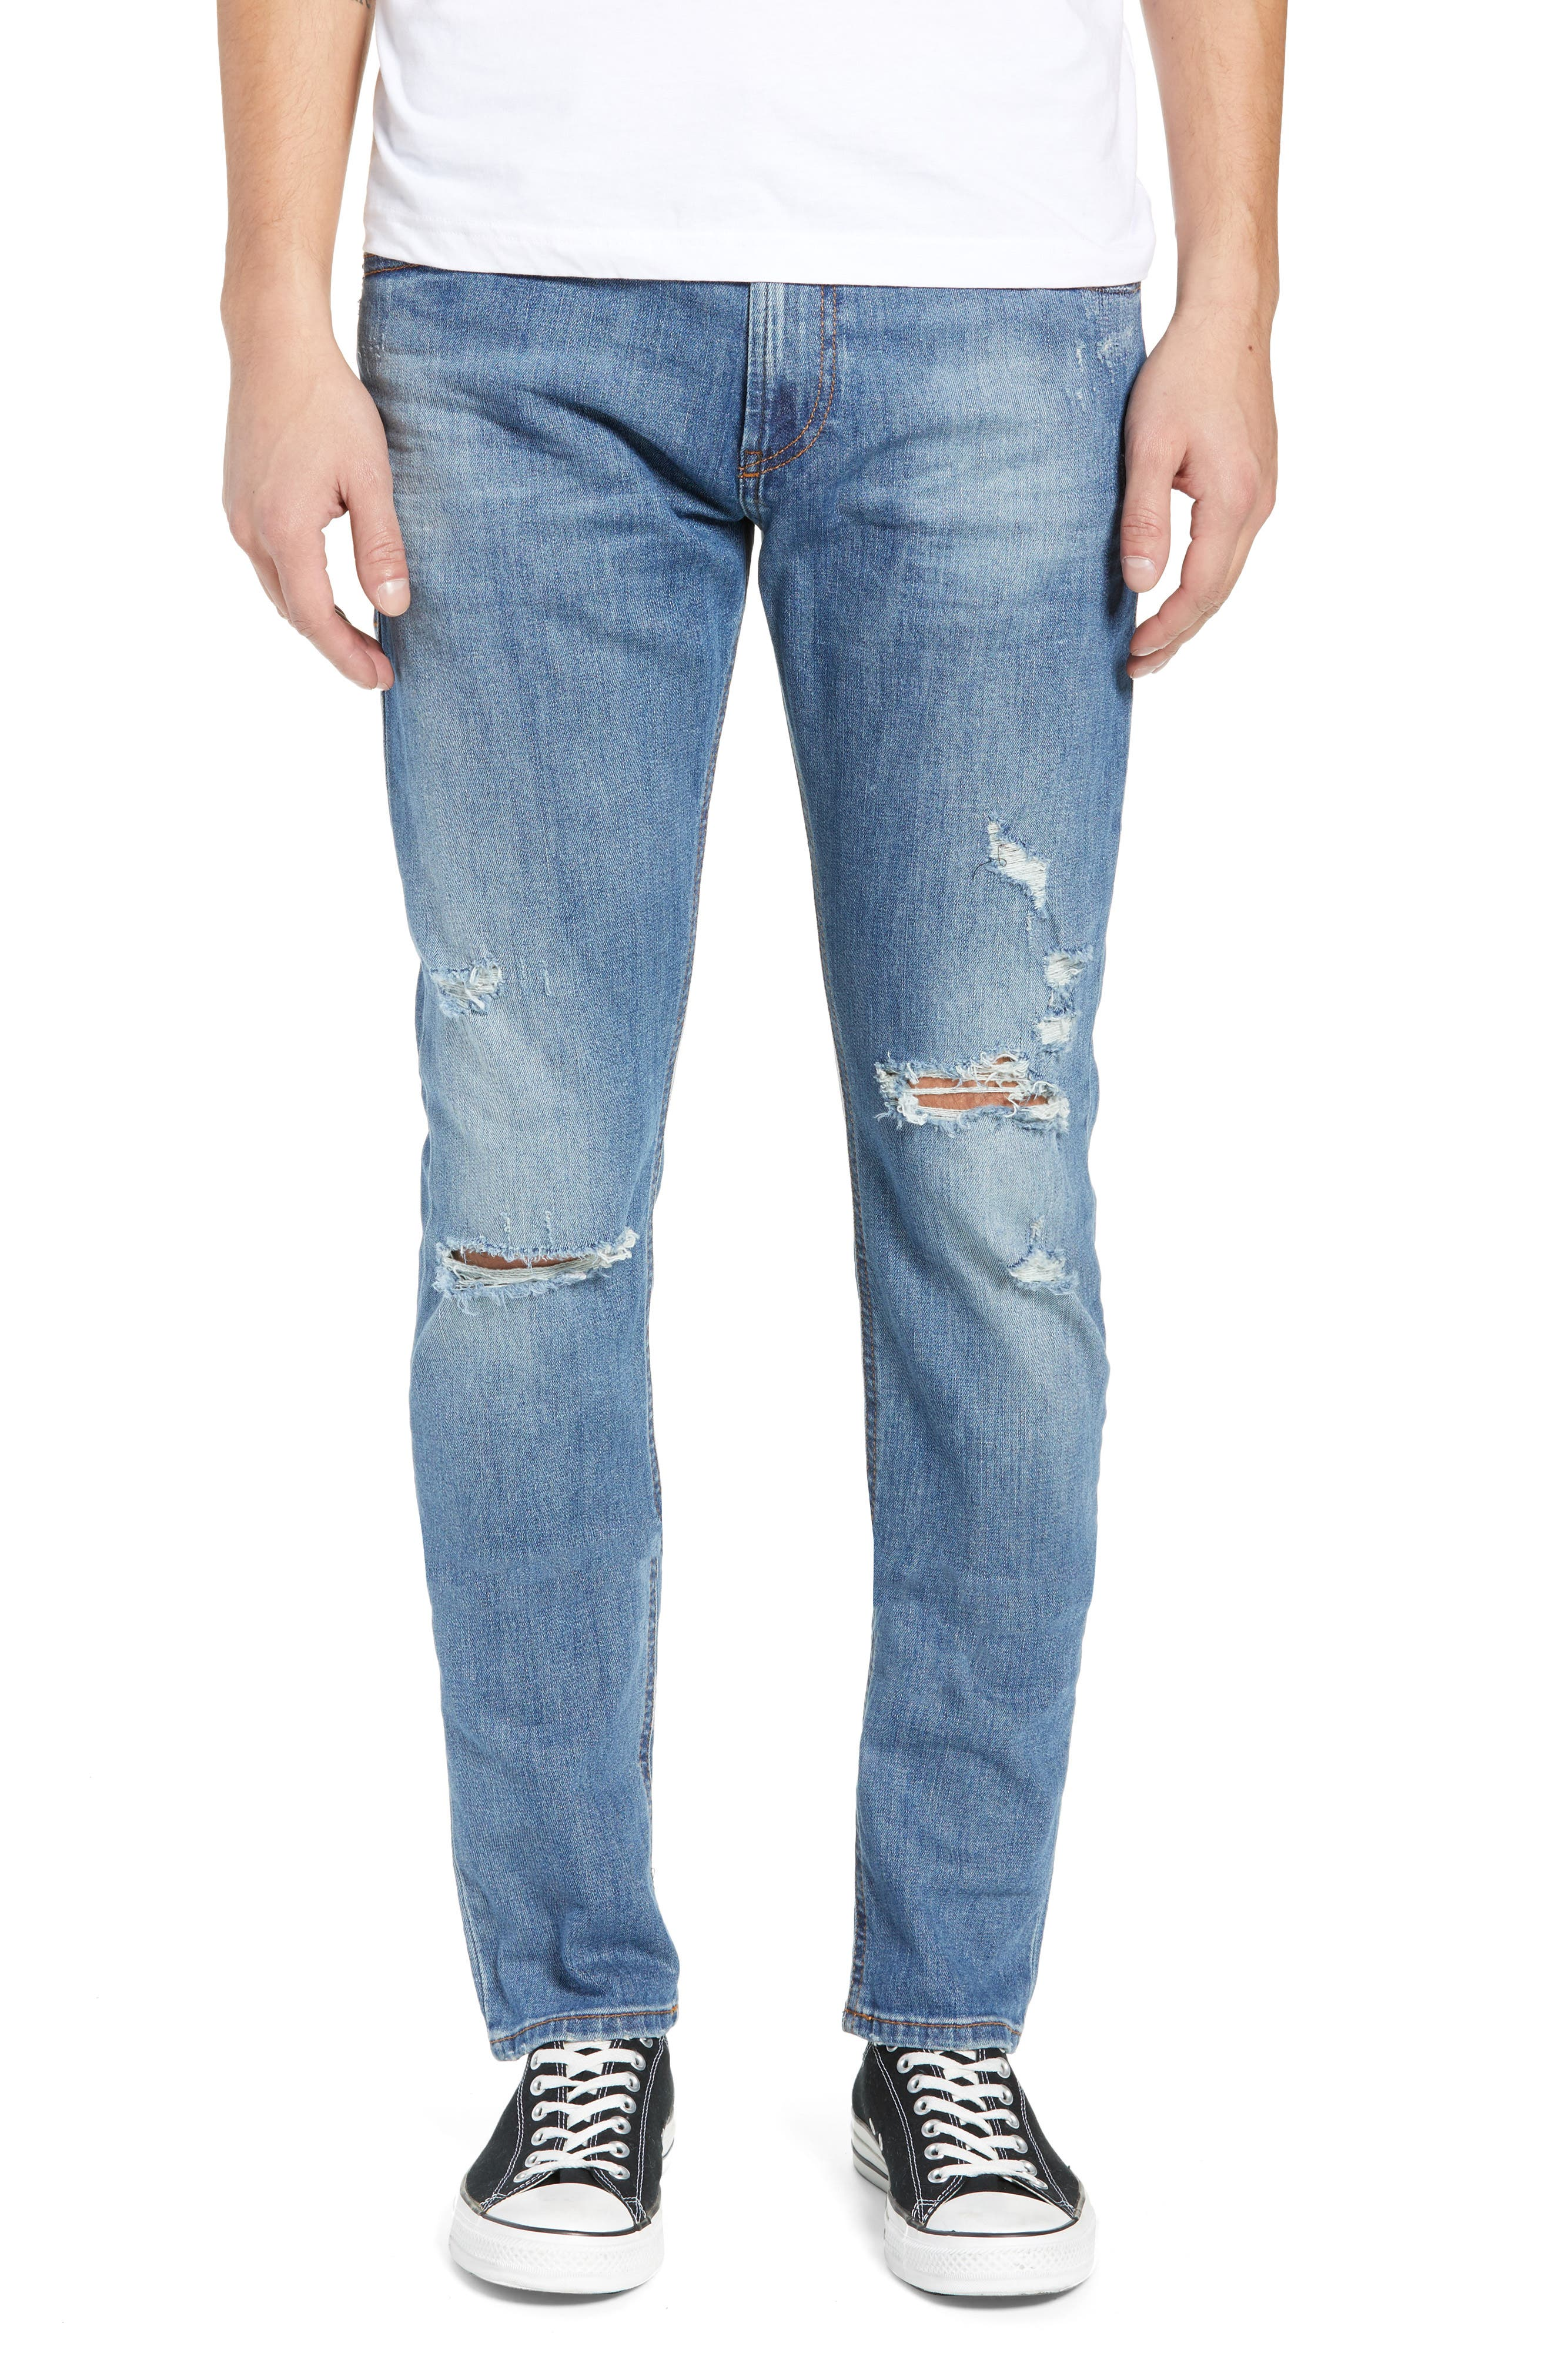 Thommer Skinny Fit Jeans,                             Main thumbnail 1, color,                             CN011